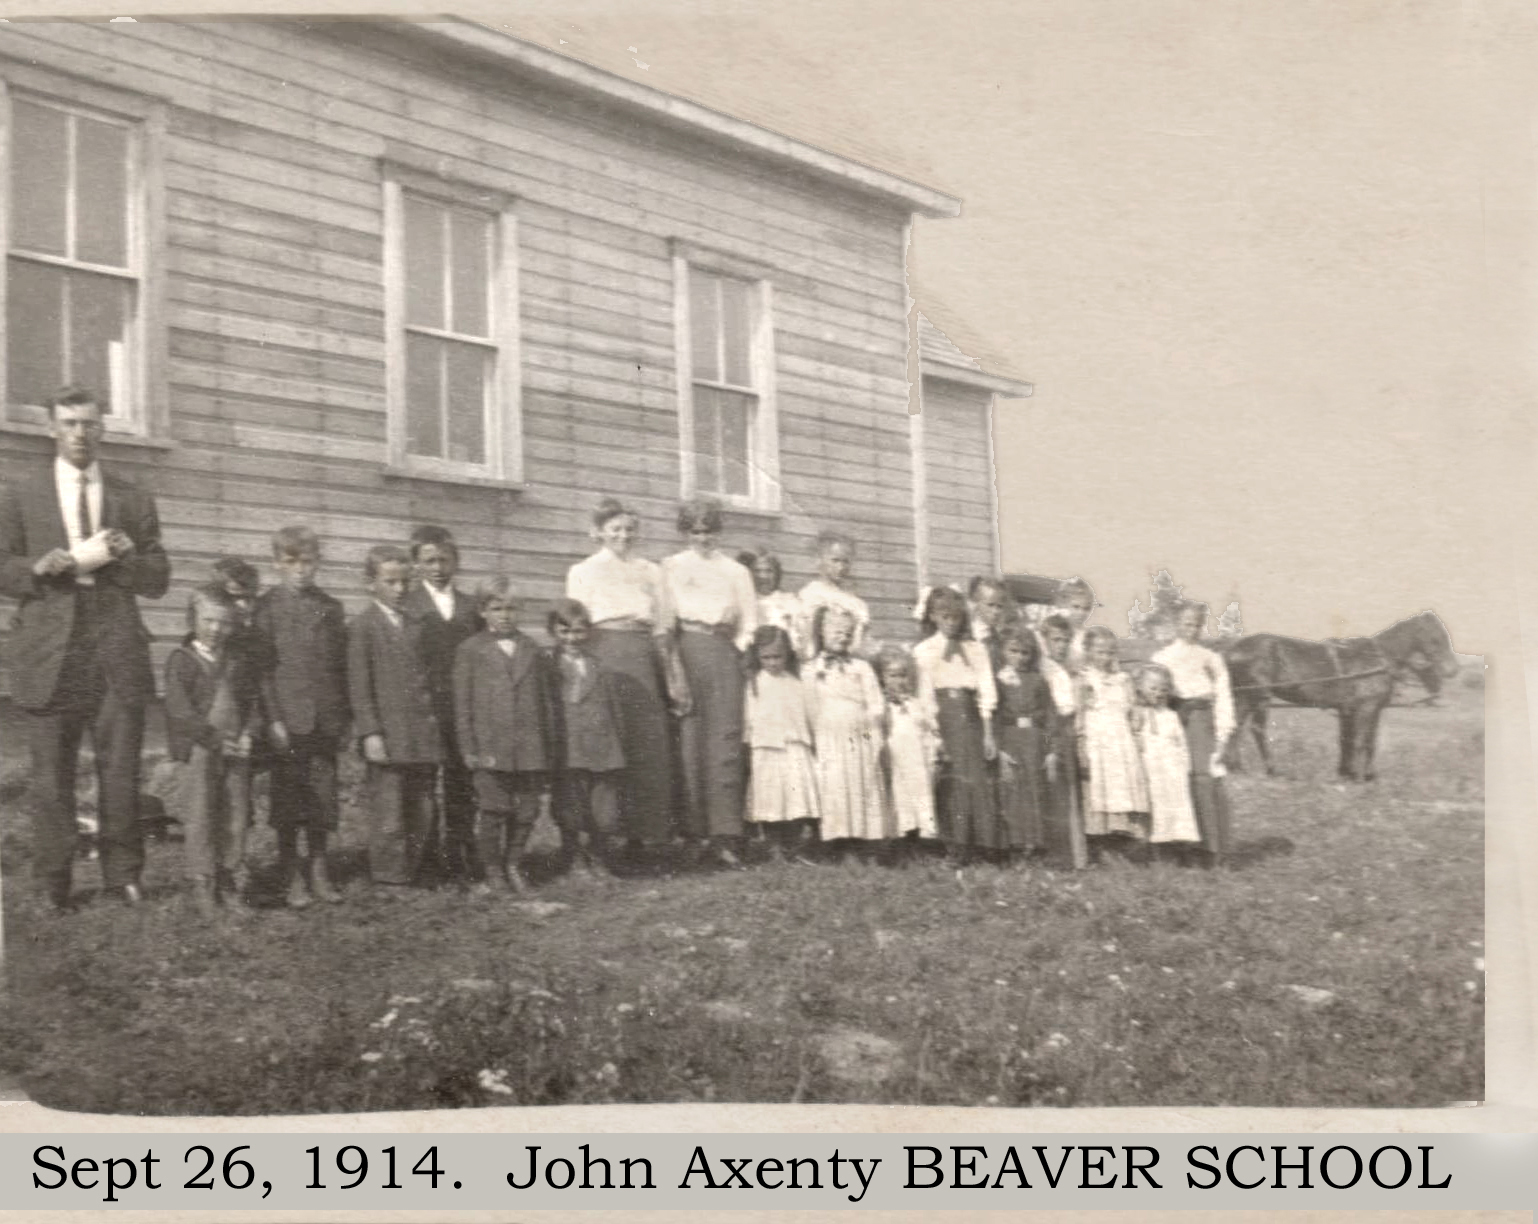 BEAVER School District # 374North East quarter of section 35 township 26 range 7 west of the second meridiannear Rock Dell, and Beaver Daleprovince of Saskatchewan, Canada